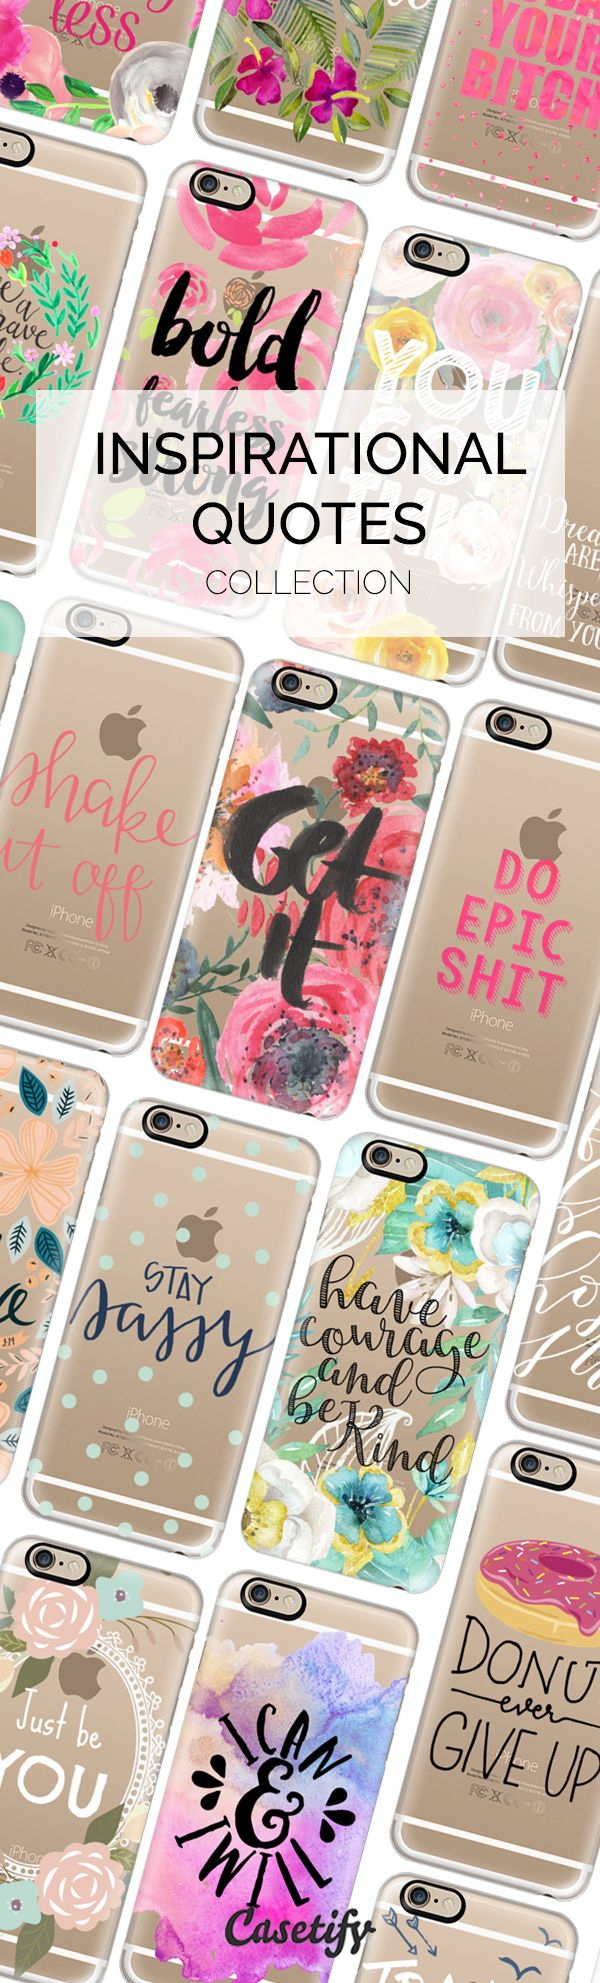 Say goodbye to 2015 and hello #2016 with some serious motivational designs. Shop them all here: https://www.casetify.com/collections/inspirational_quotes#/